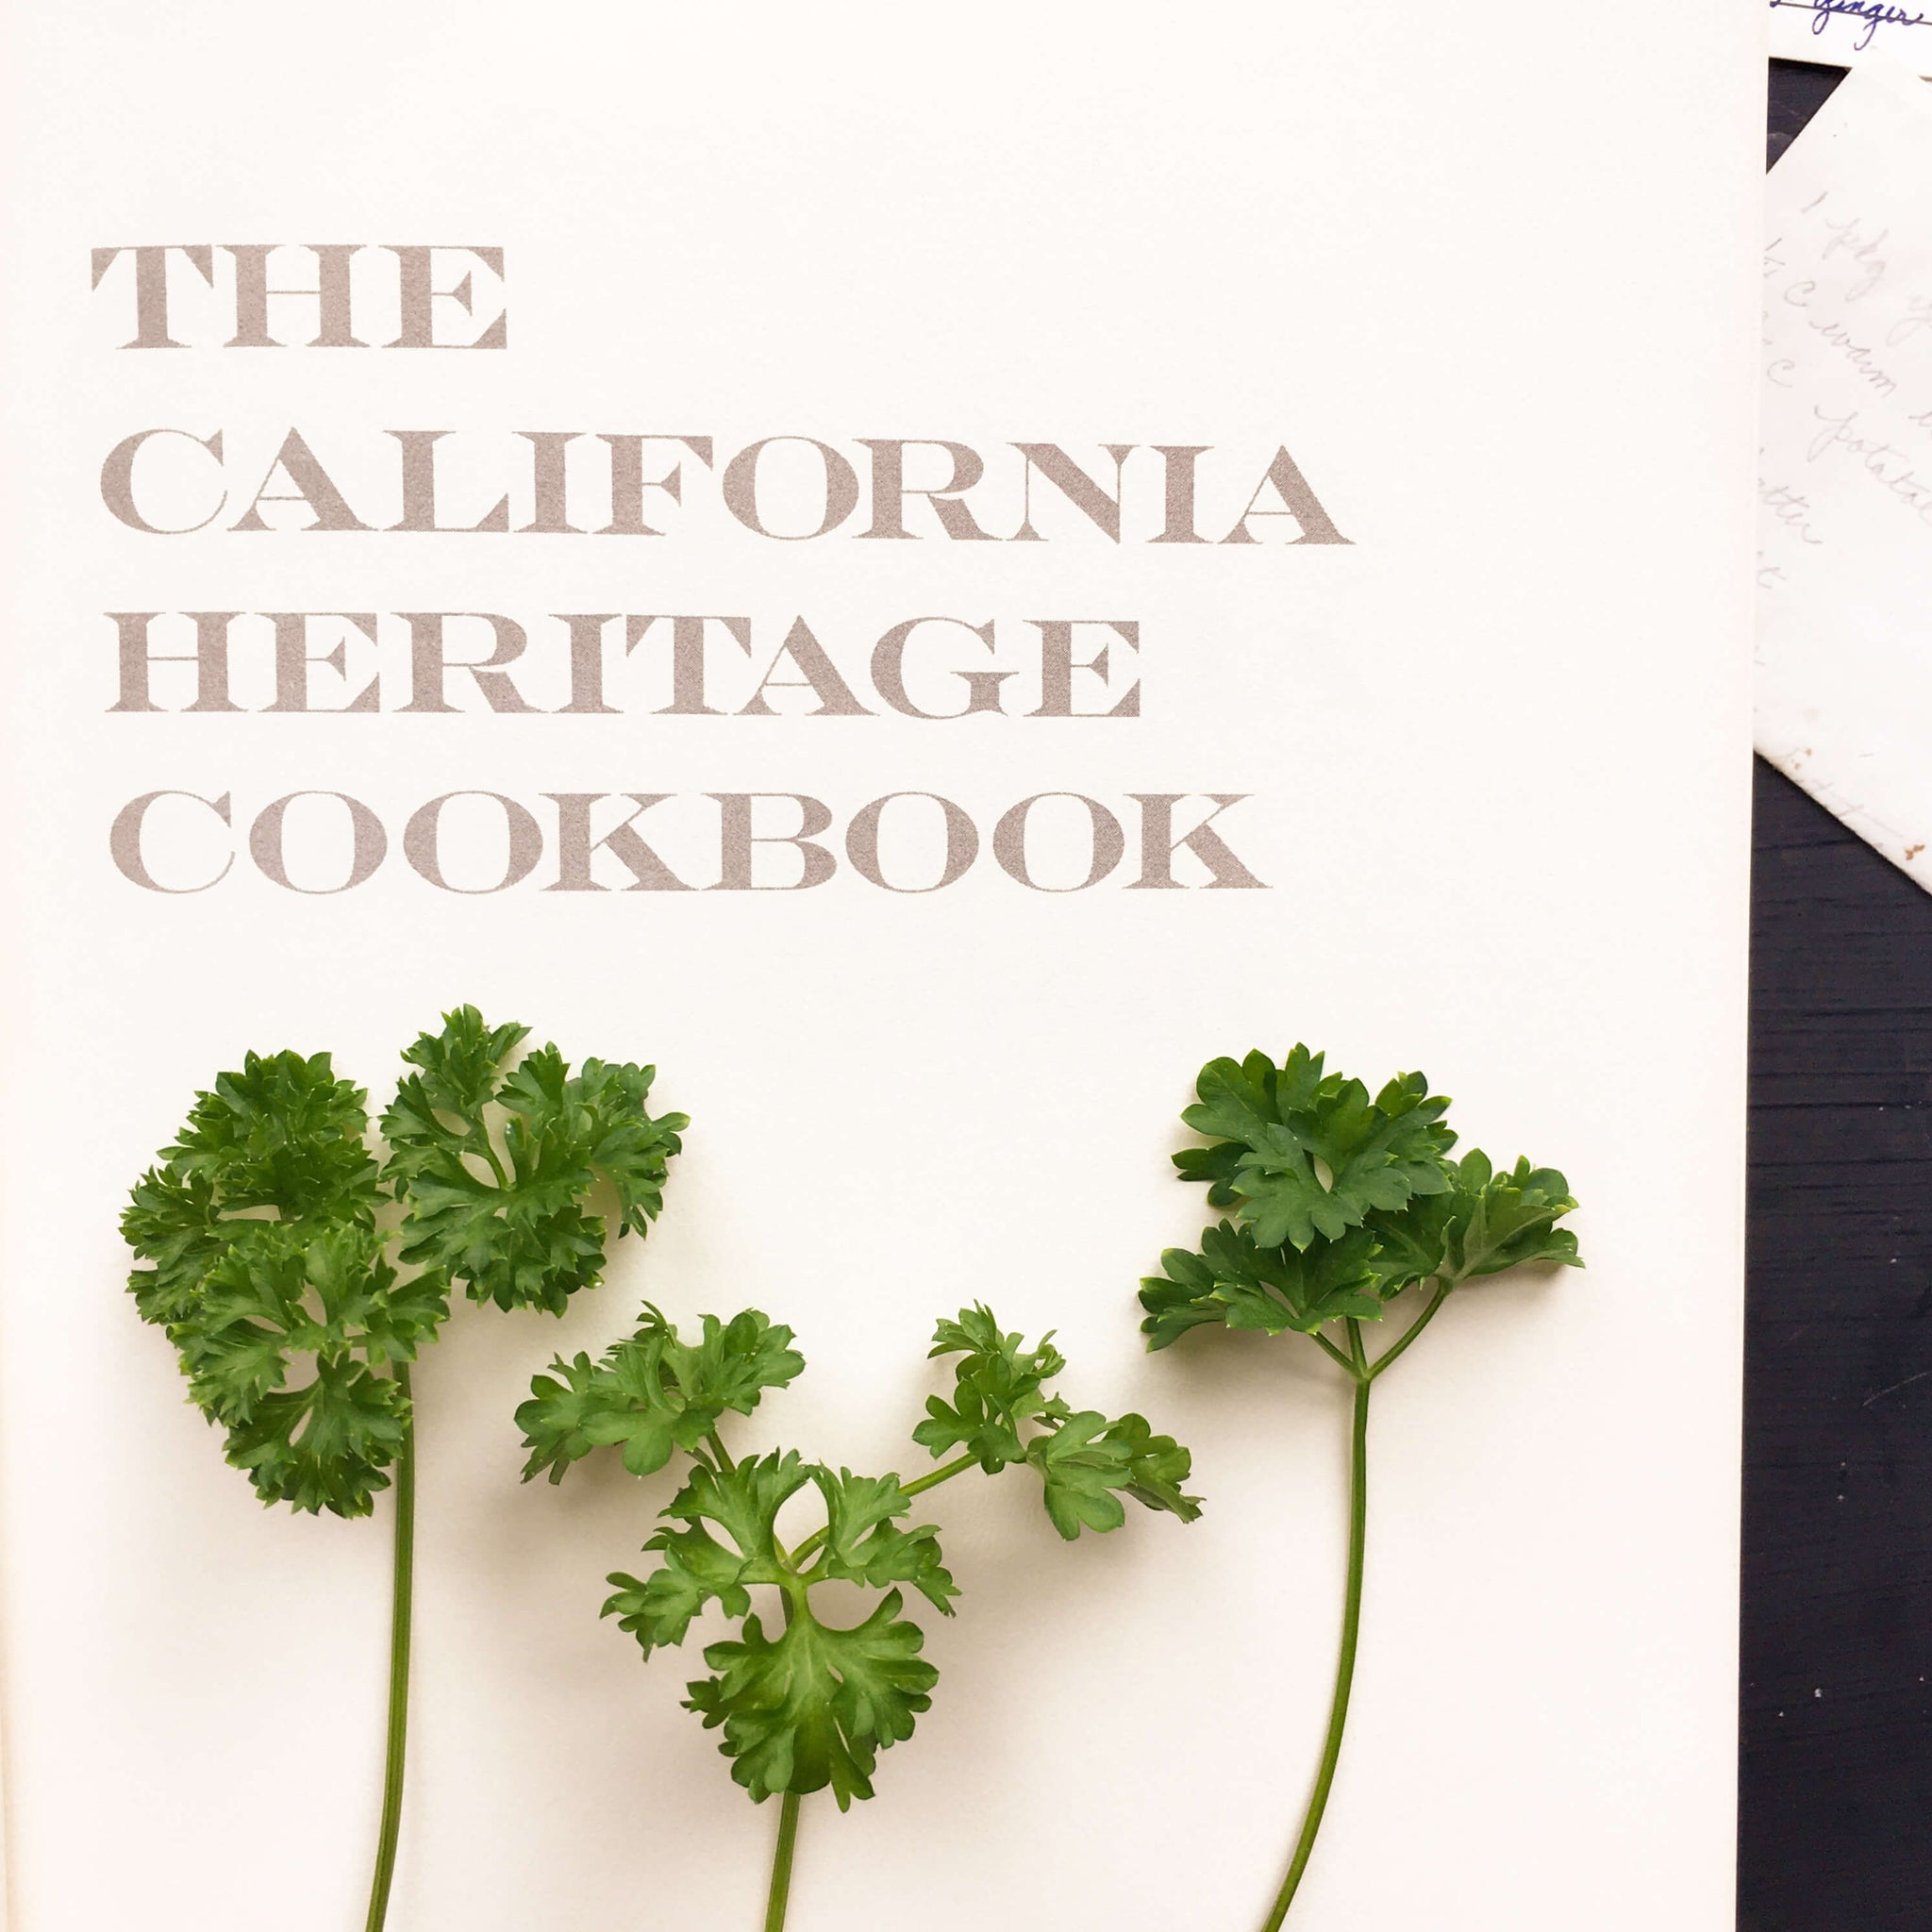 The California Heritage Cookbook - The Junior League of Pasadena - 1976 Edition 16th Printing